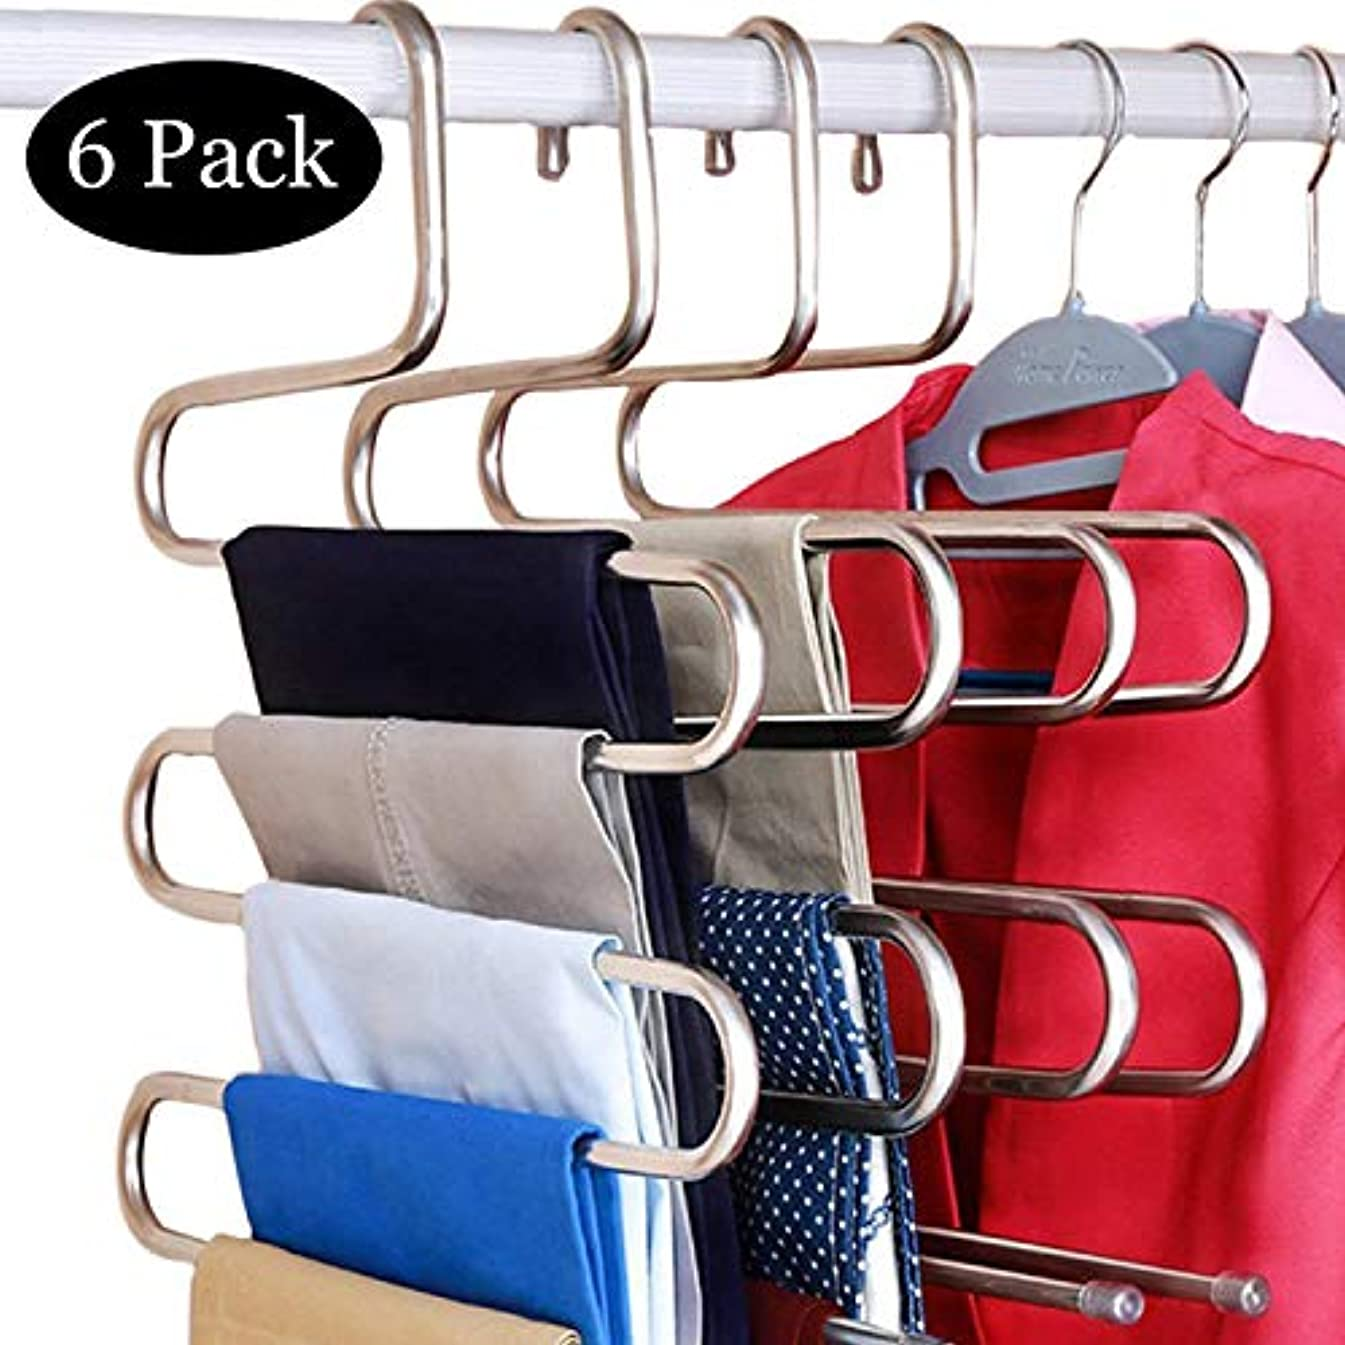 DOIOWN 6 Pack Pants Hangers S-Shape Stainless Steel Clothes Hangers Space Saving Hangers Closet Organizer for Pants Jeans Scarf(5 Layers,6Pcs) (6-Pieces)